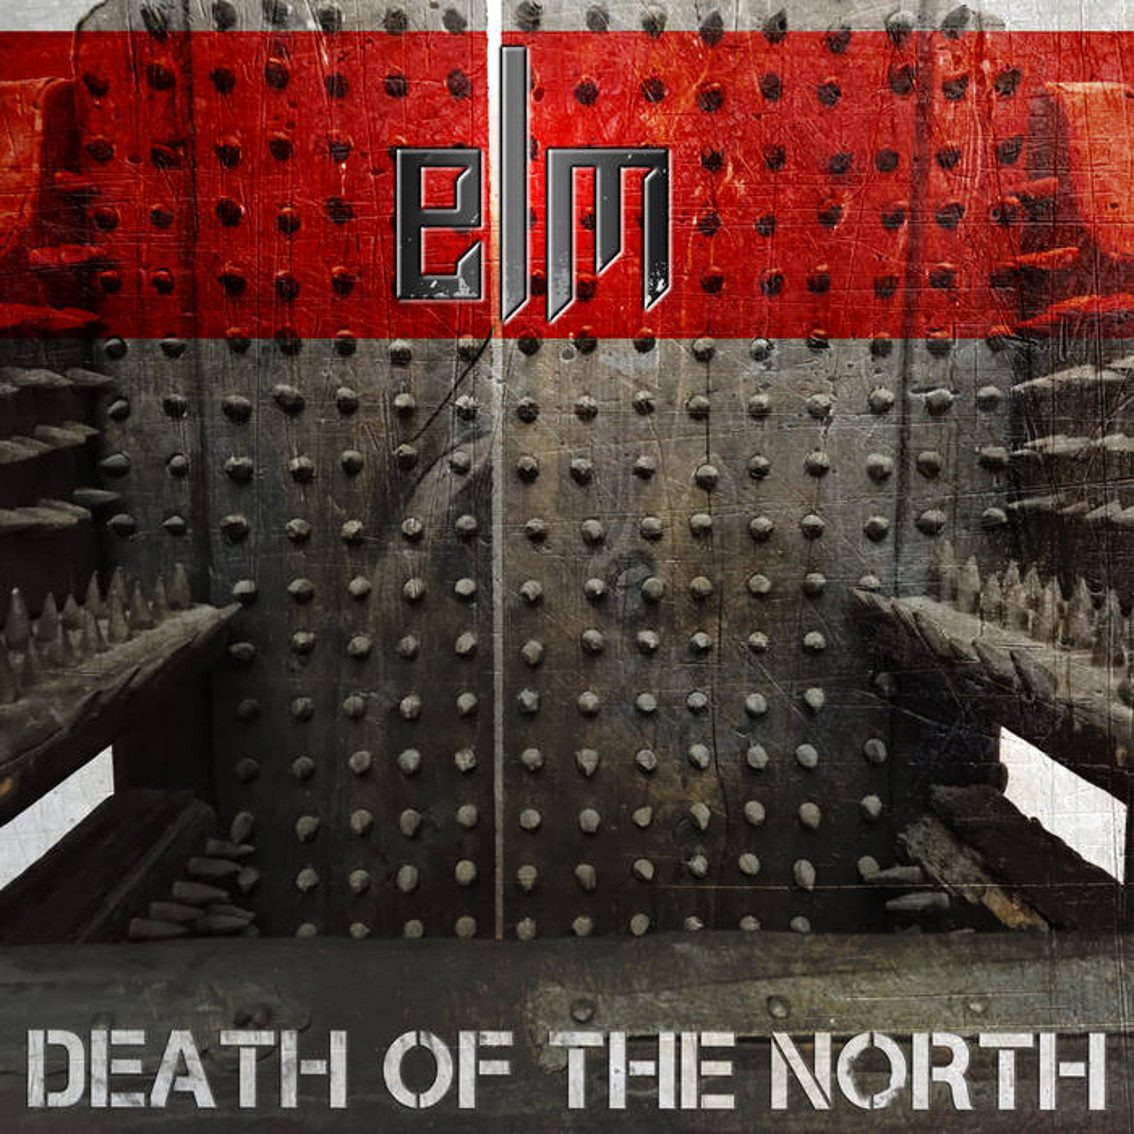 ELM returns with a smashing download EP: 'Death Of The North' - listen now